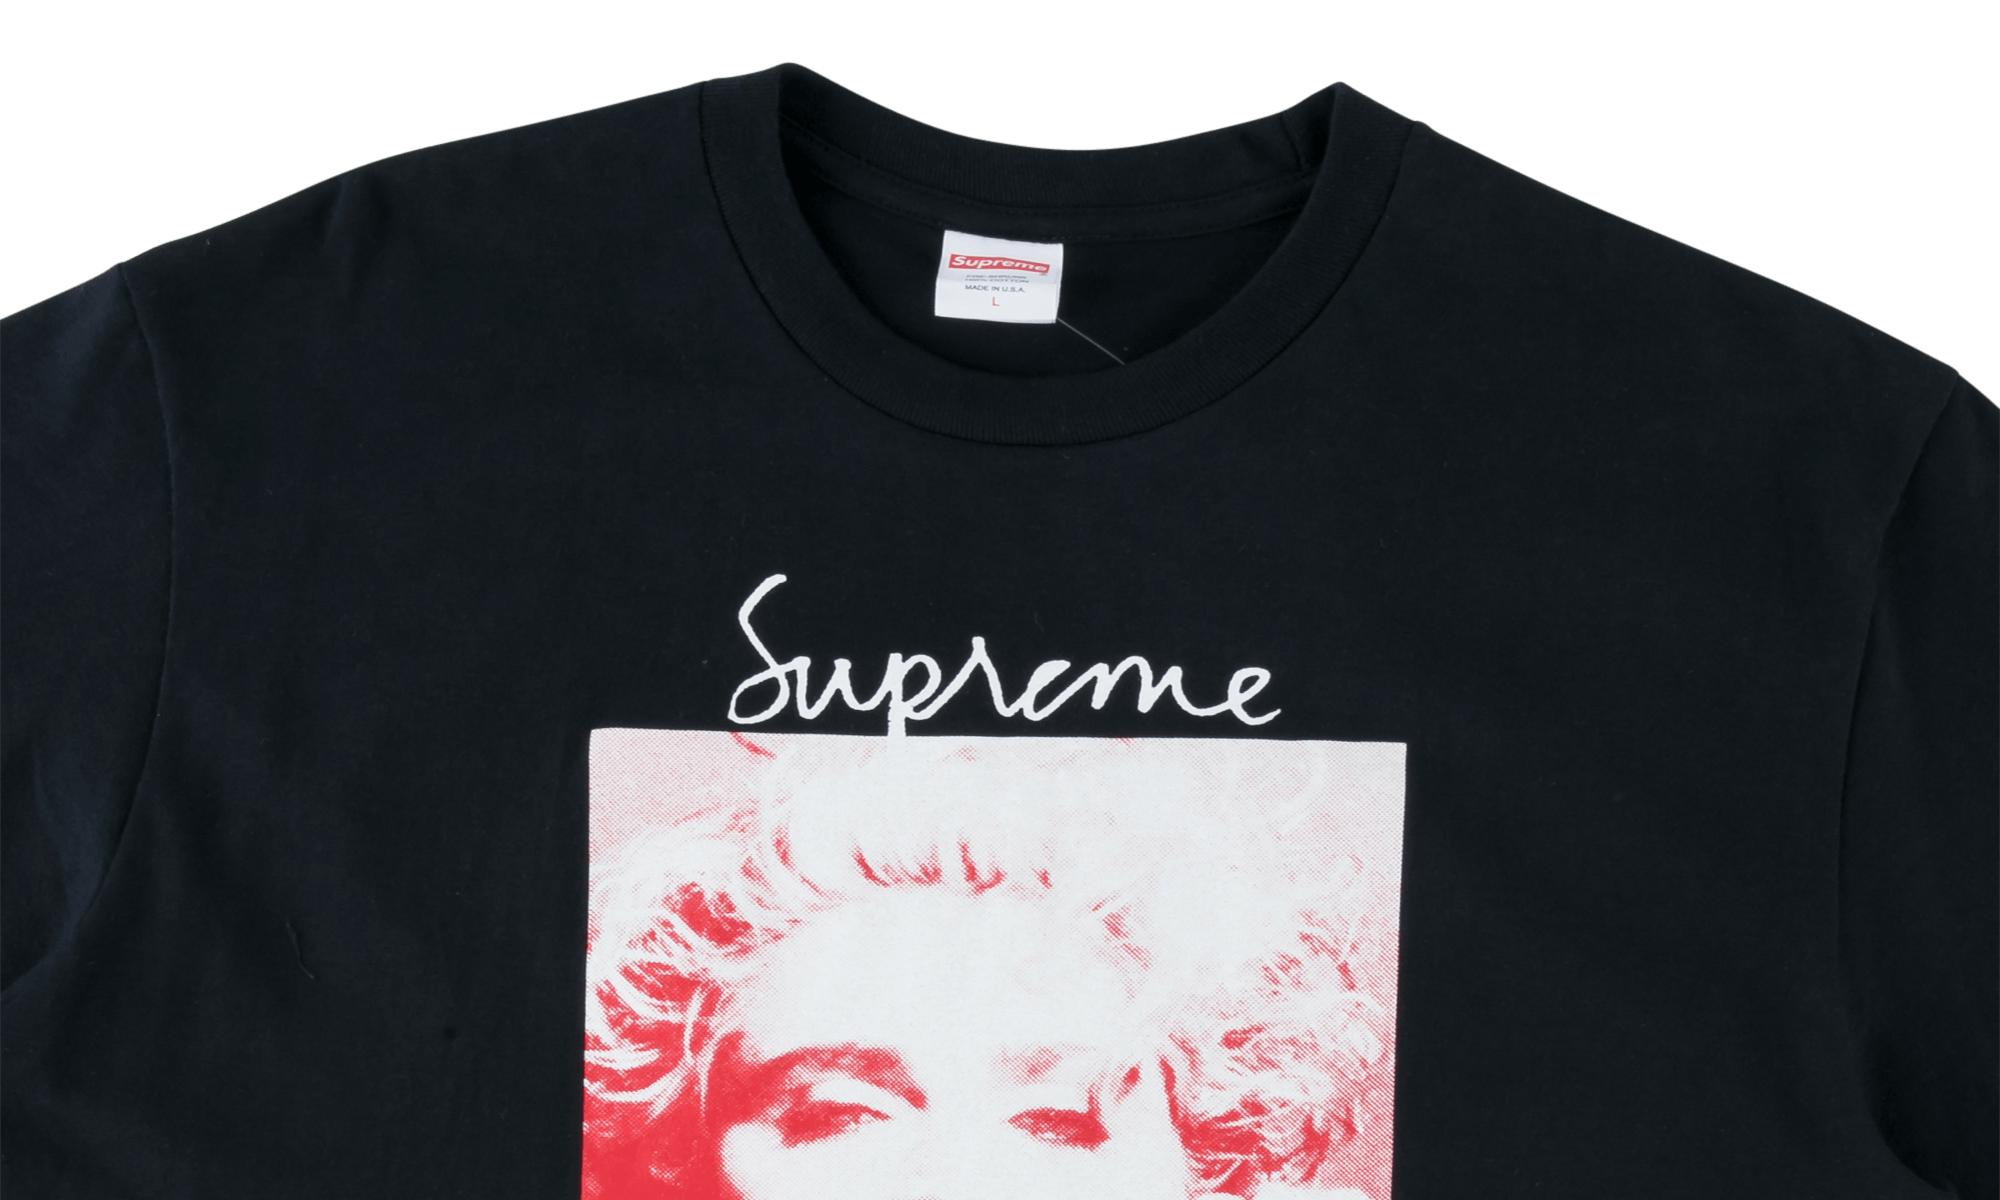 7eb5ca7c5 Supreme - Blue Madonna T-shirt 'fw 18' for Men - Lyst. View fullscreen